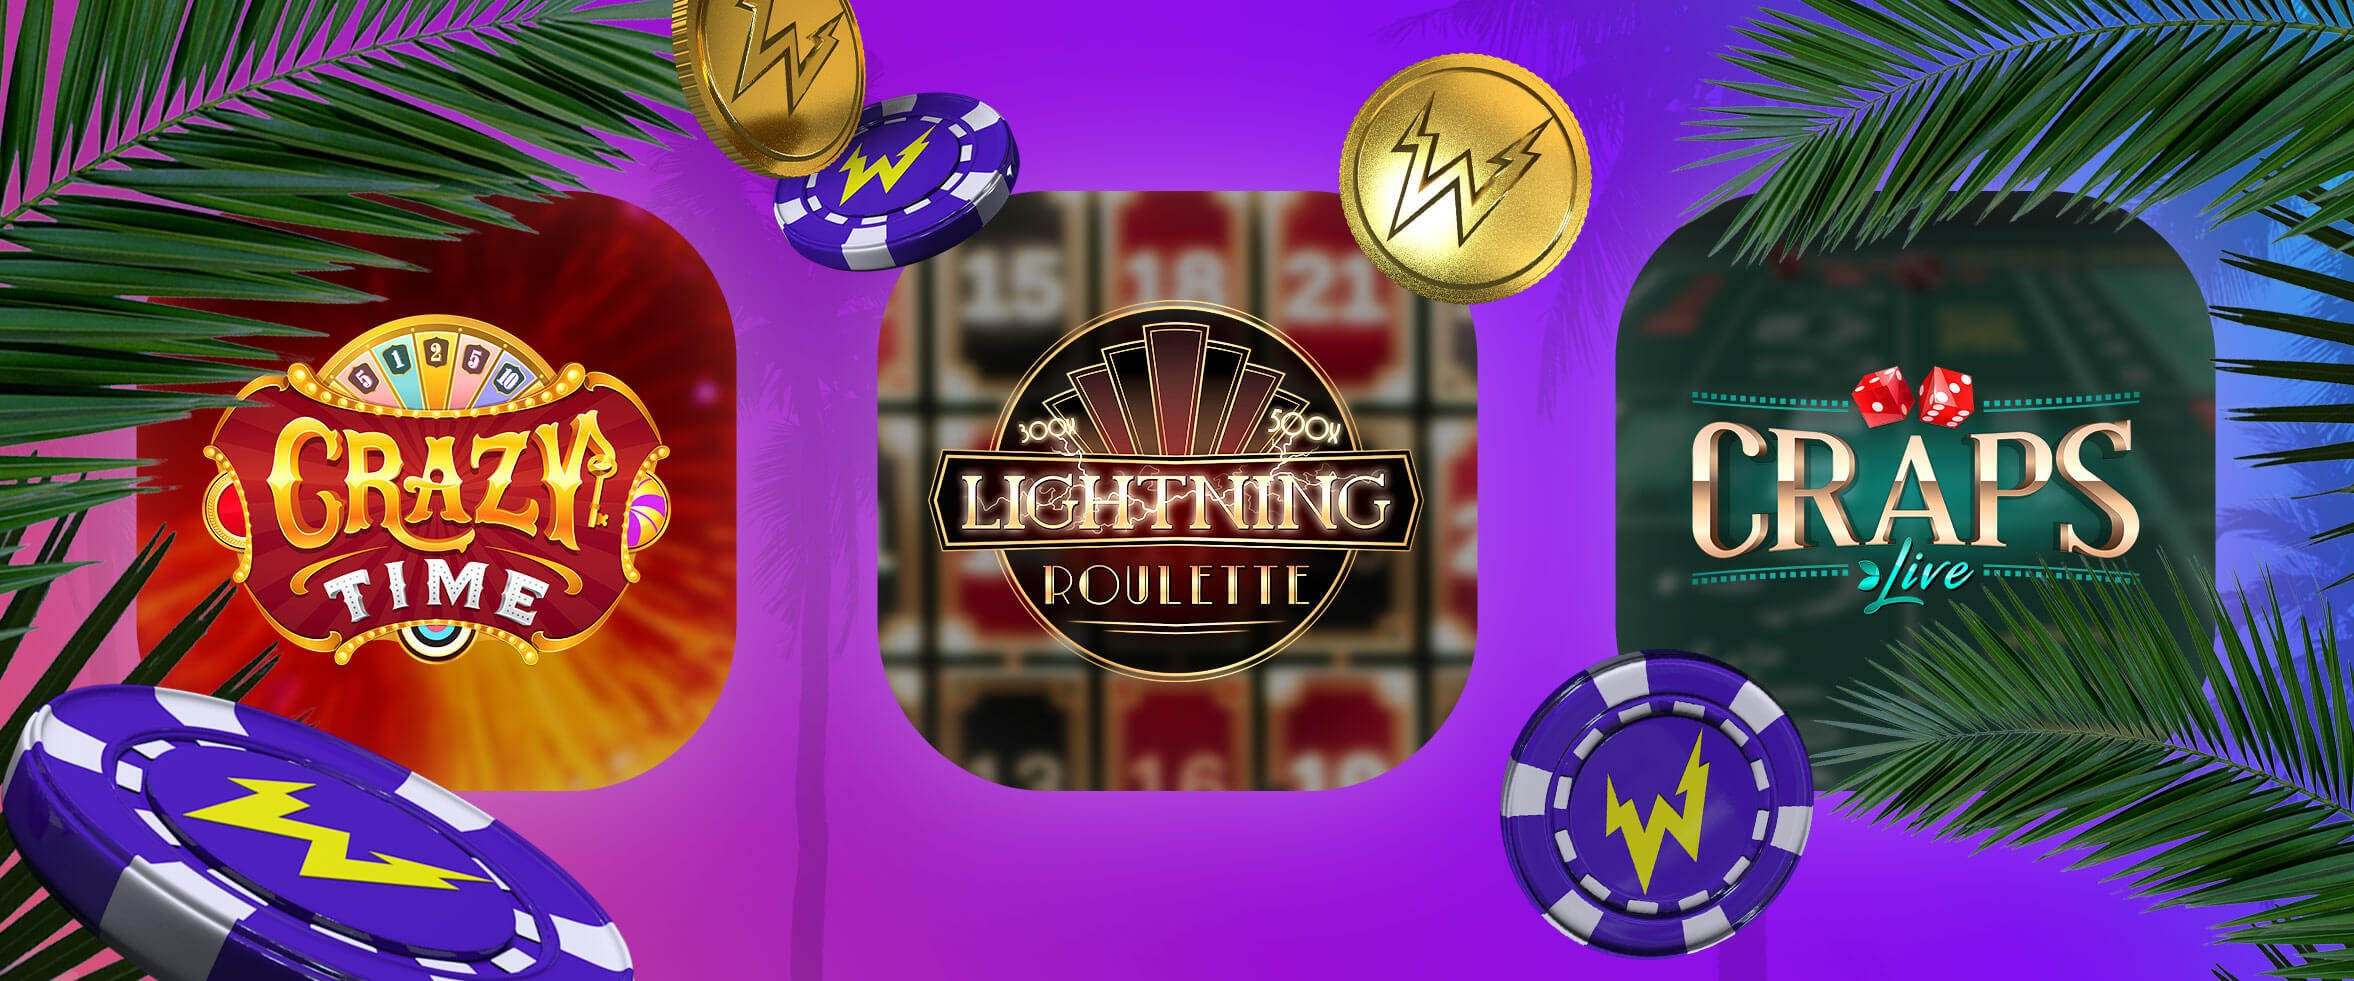 Une tombola à 50,000 $ au casino en direct grâce à Evolution